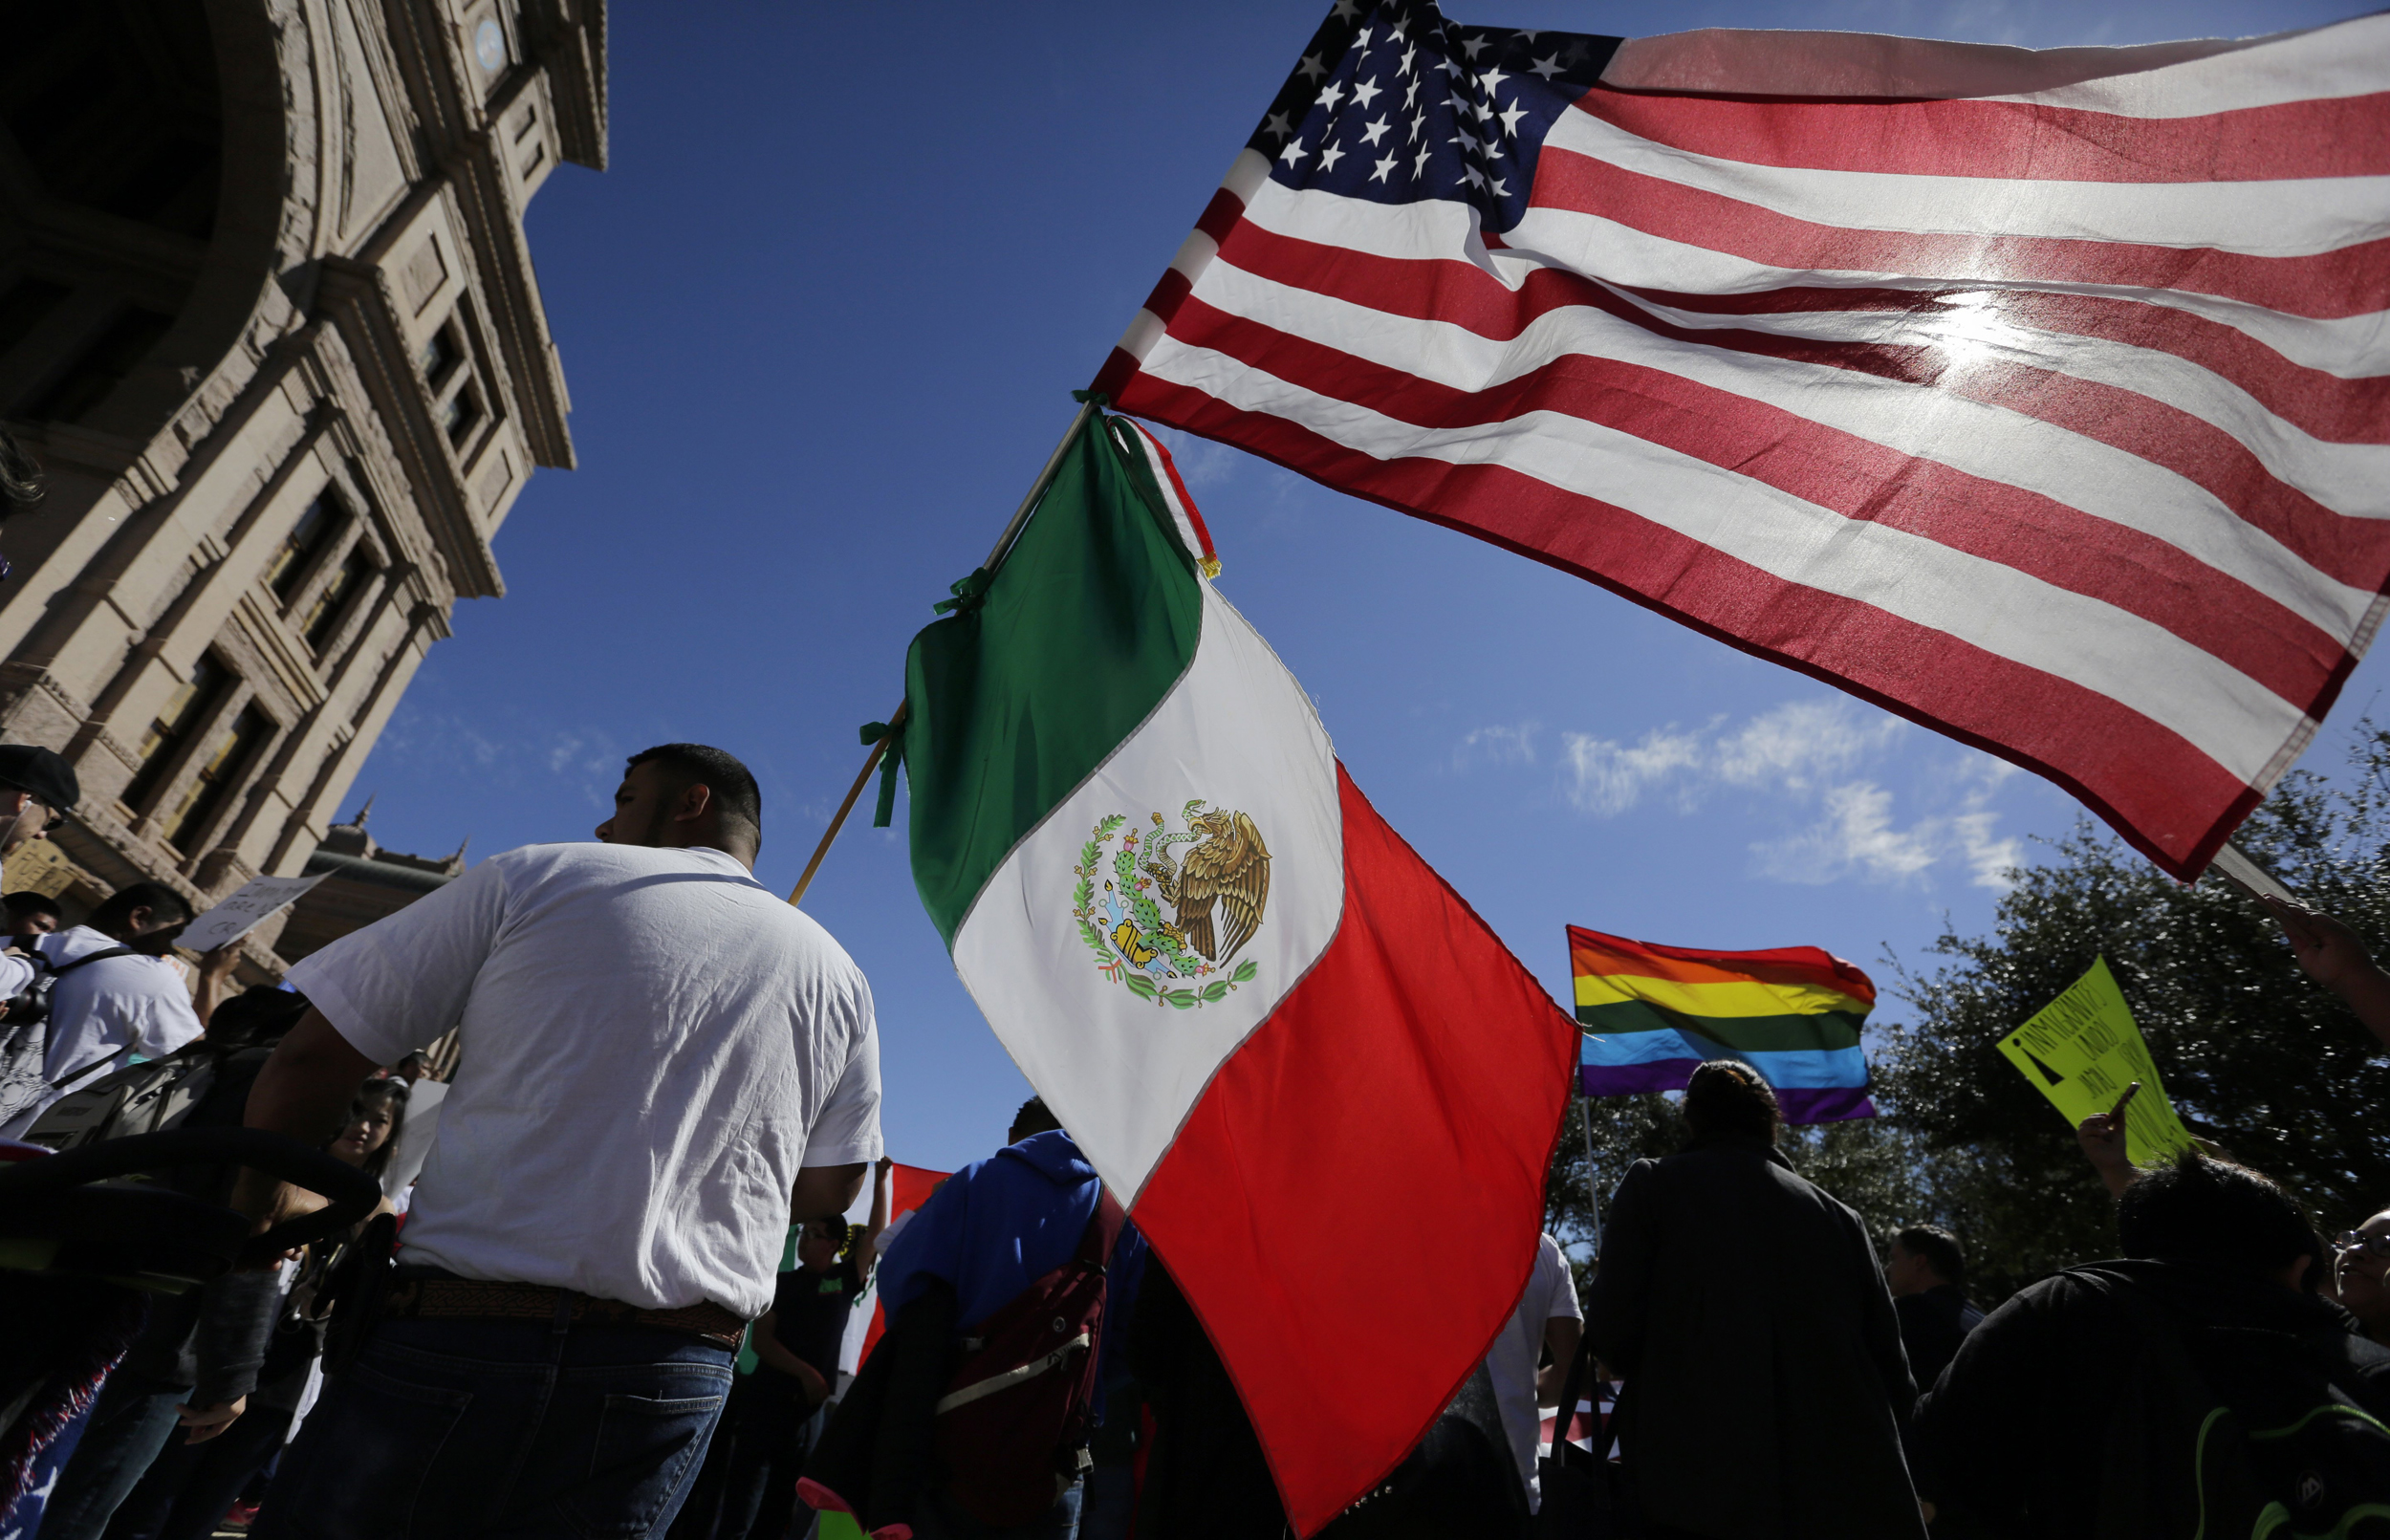 Employees Across U.S. Fired After Joining Day Without Immigrants Protest